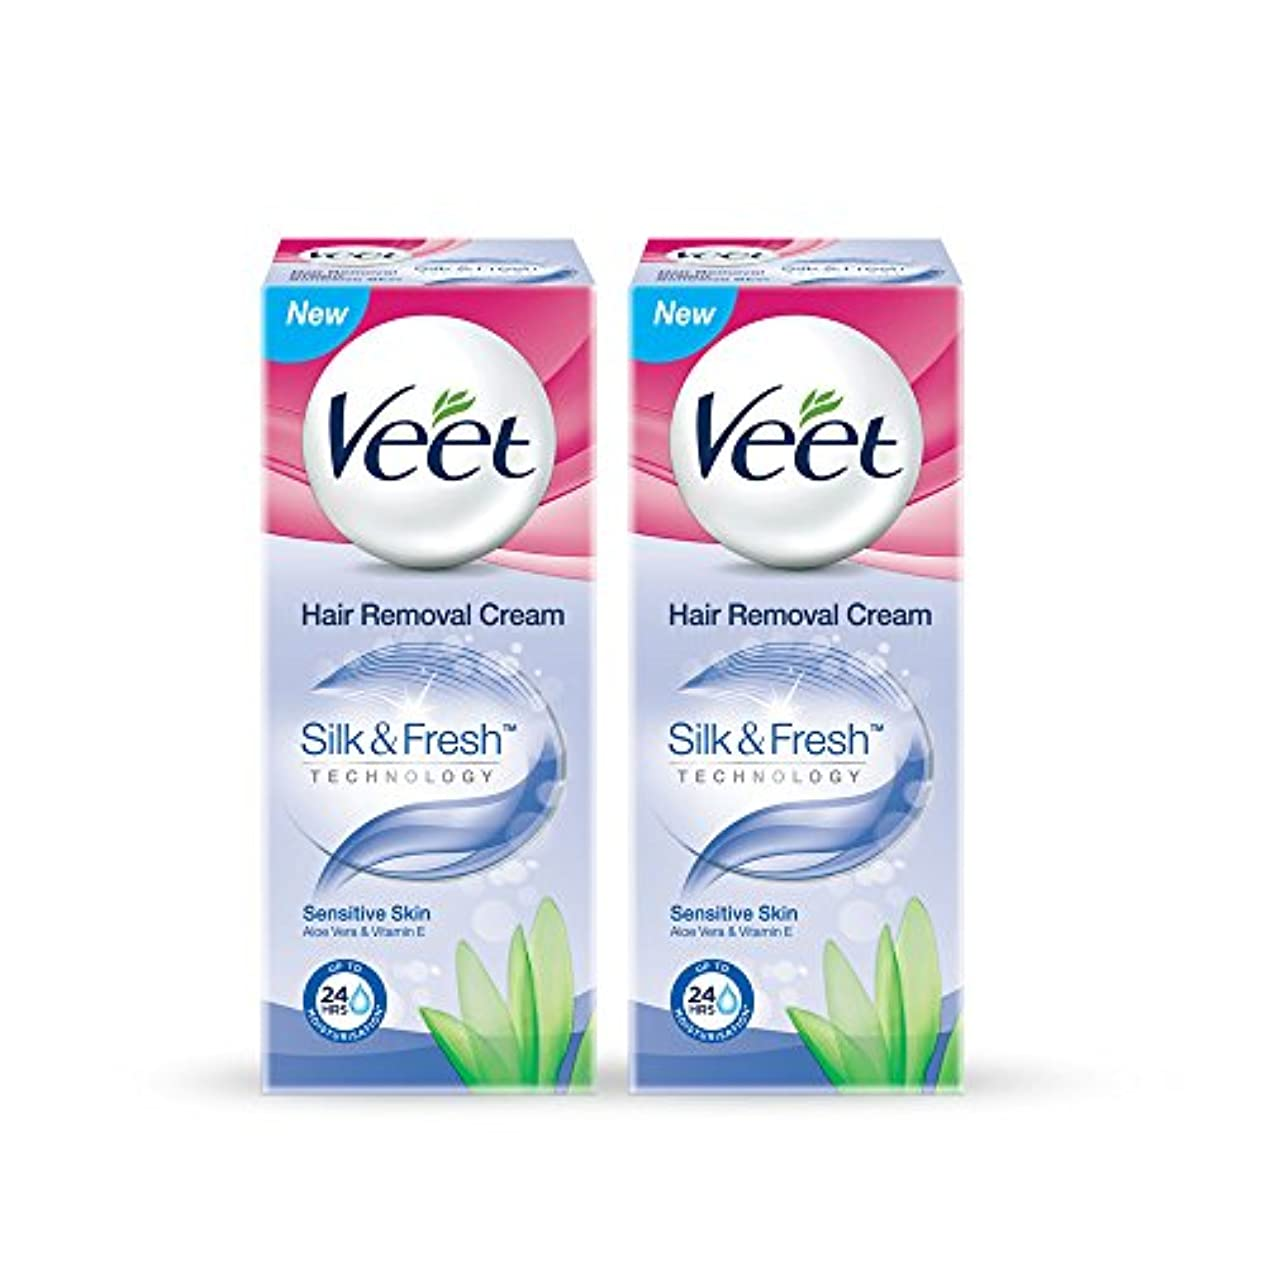 闇行商アラームVeet Hair Removal Gel Cream For Sensitive Skin With Aloe Vera and Vitamin E 25 g (Pack of 2)